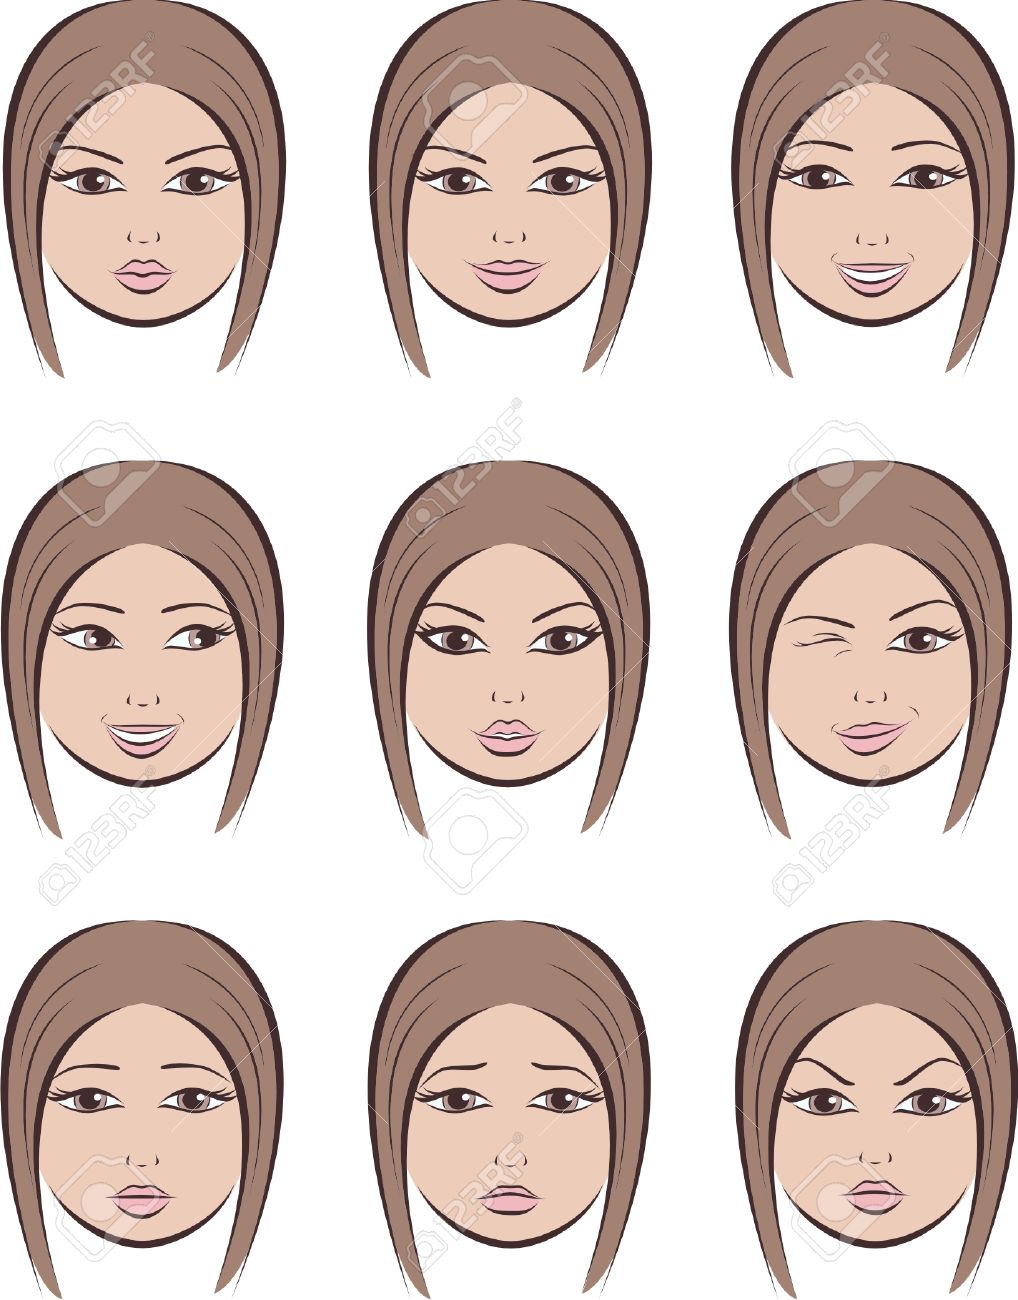 Facial expressions women use